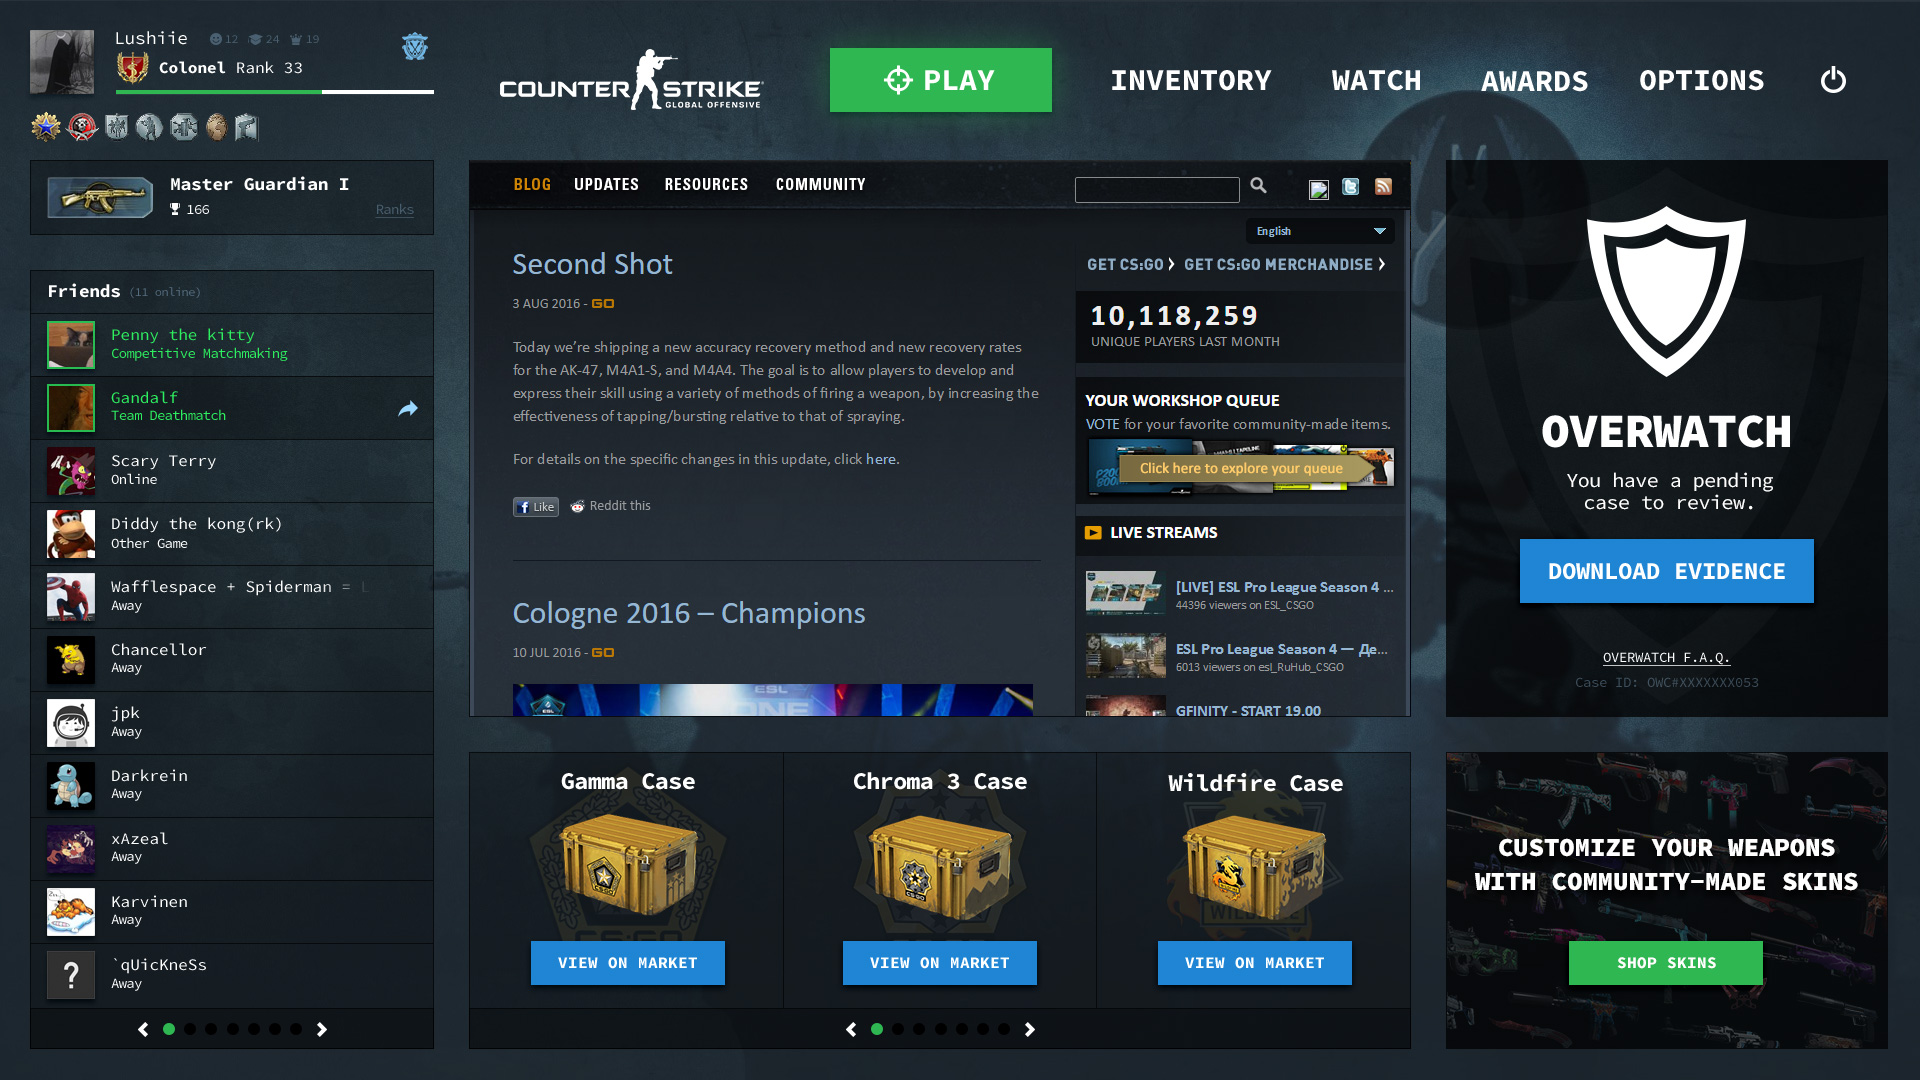 Counter Strike: Global Offensive Redesigned Interface